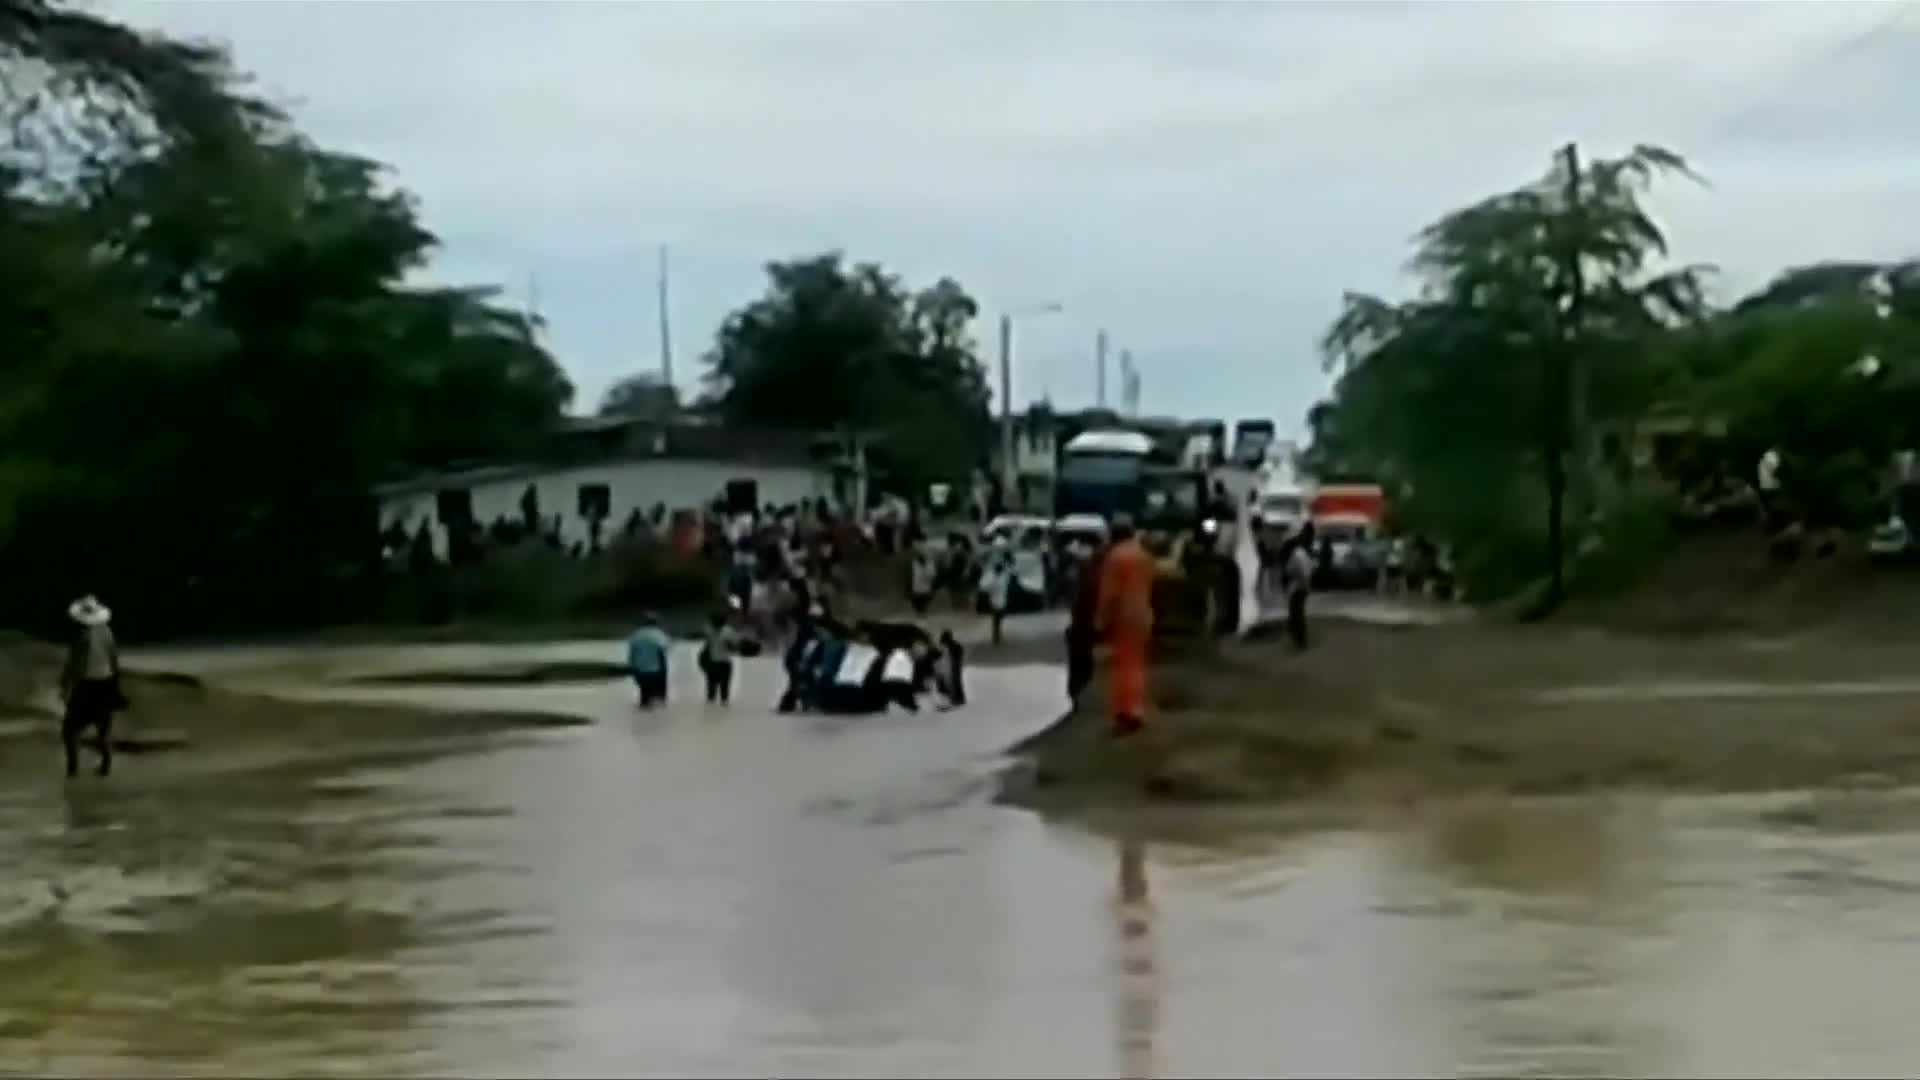 Mudslides block roads in Peru's Andes, as heavy rainfall continues